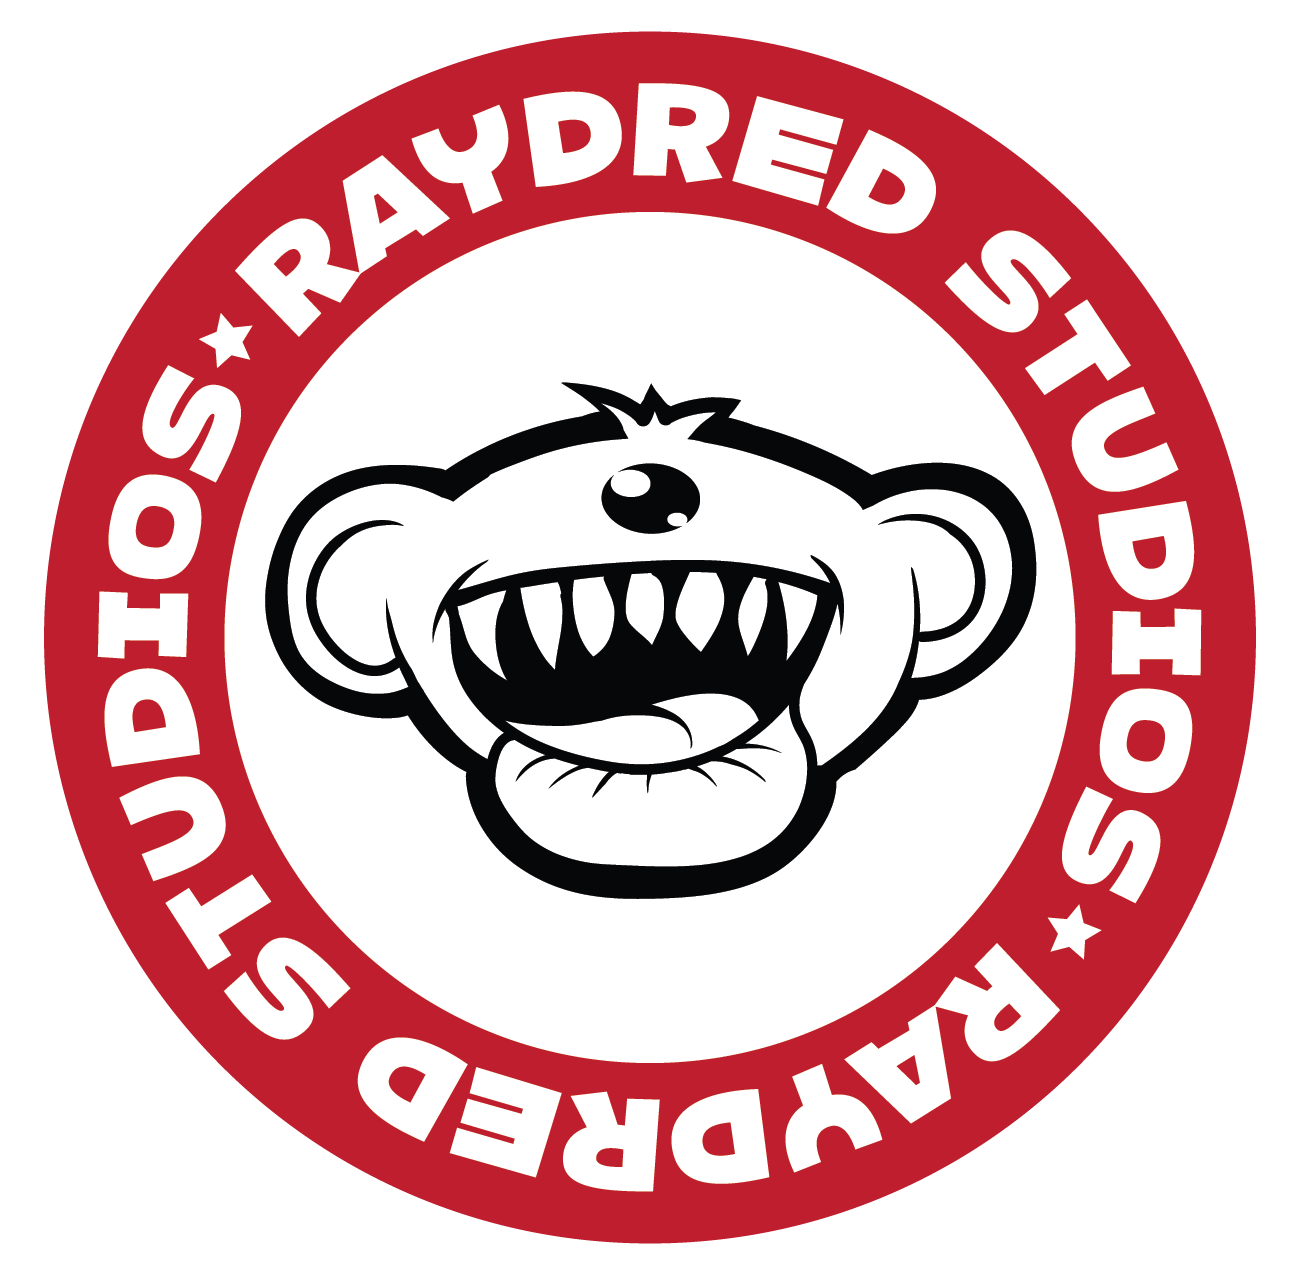 Raydred Studios